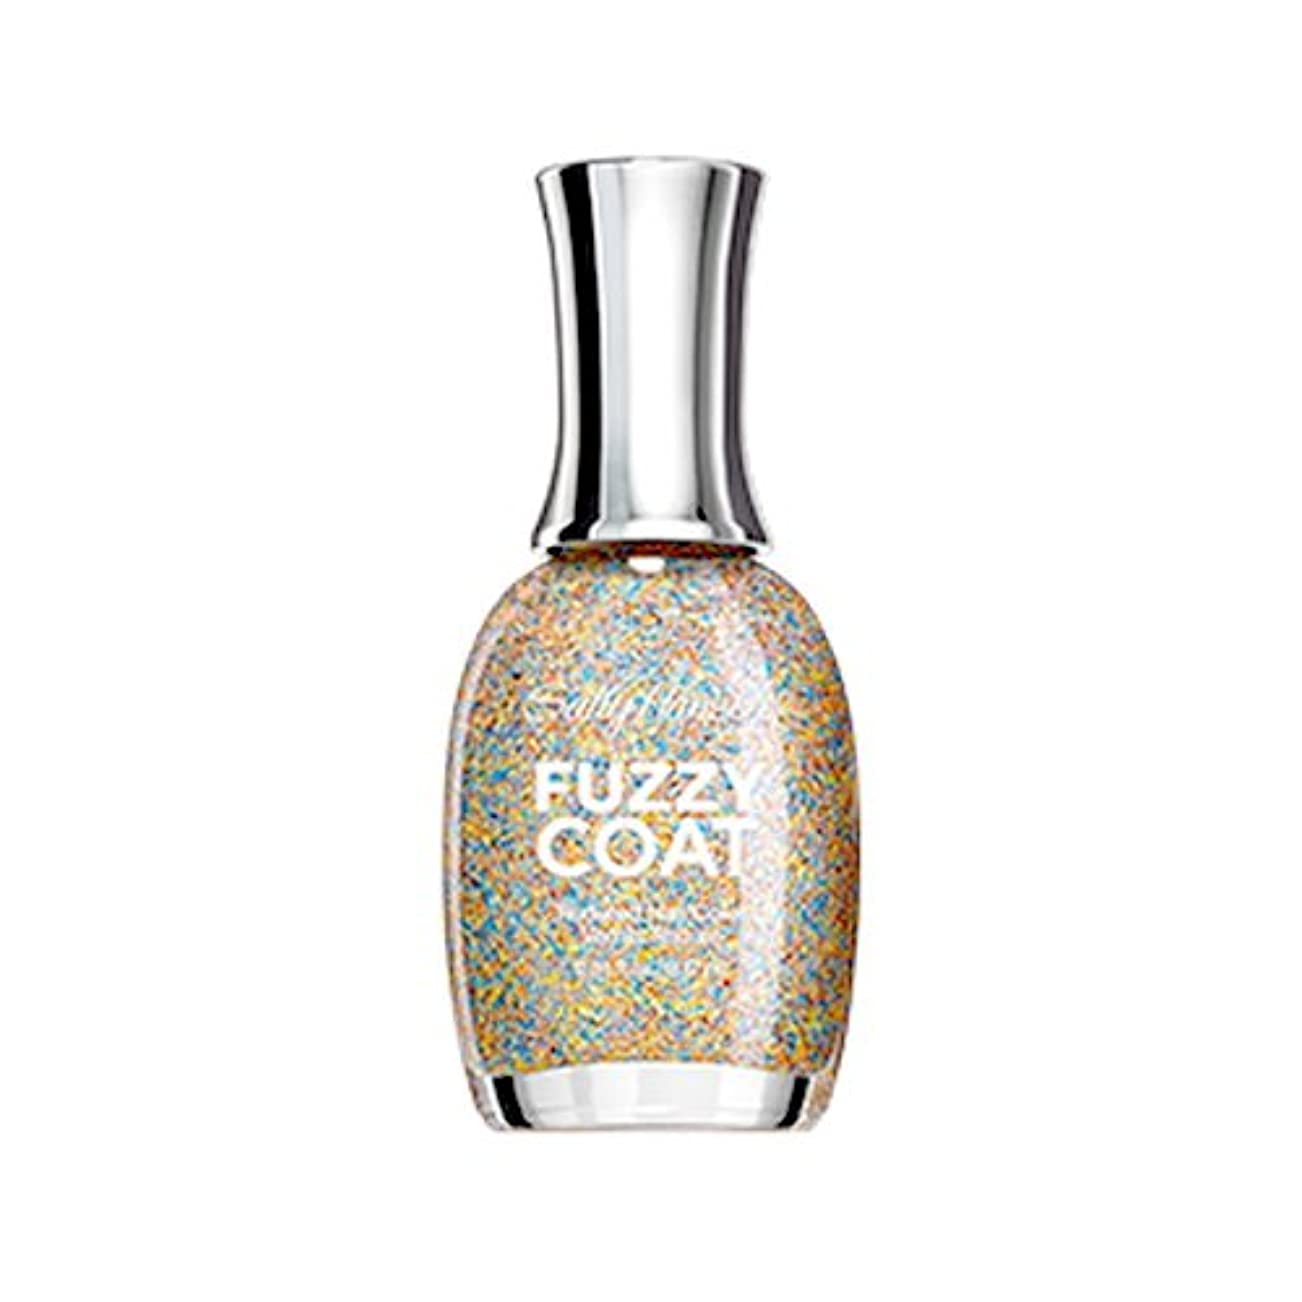 金額チャールズキージング不規則性(6 Pack) SALLY HANSEN Fuzzy Coat Special Effect Textured Nail Color - All Yarned Up (並行輸入品)